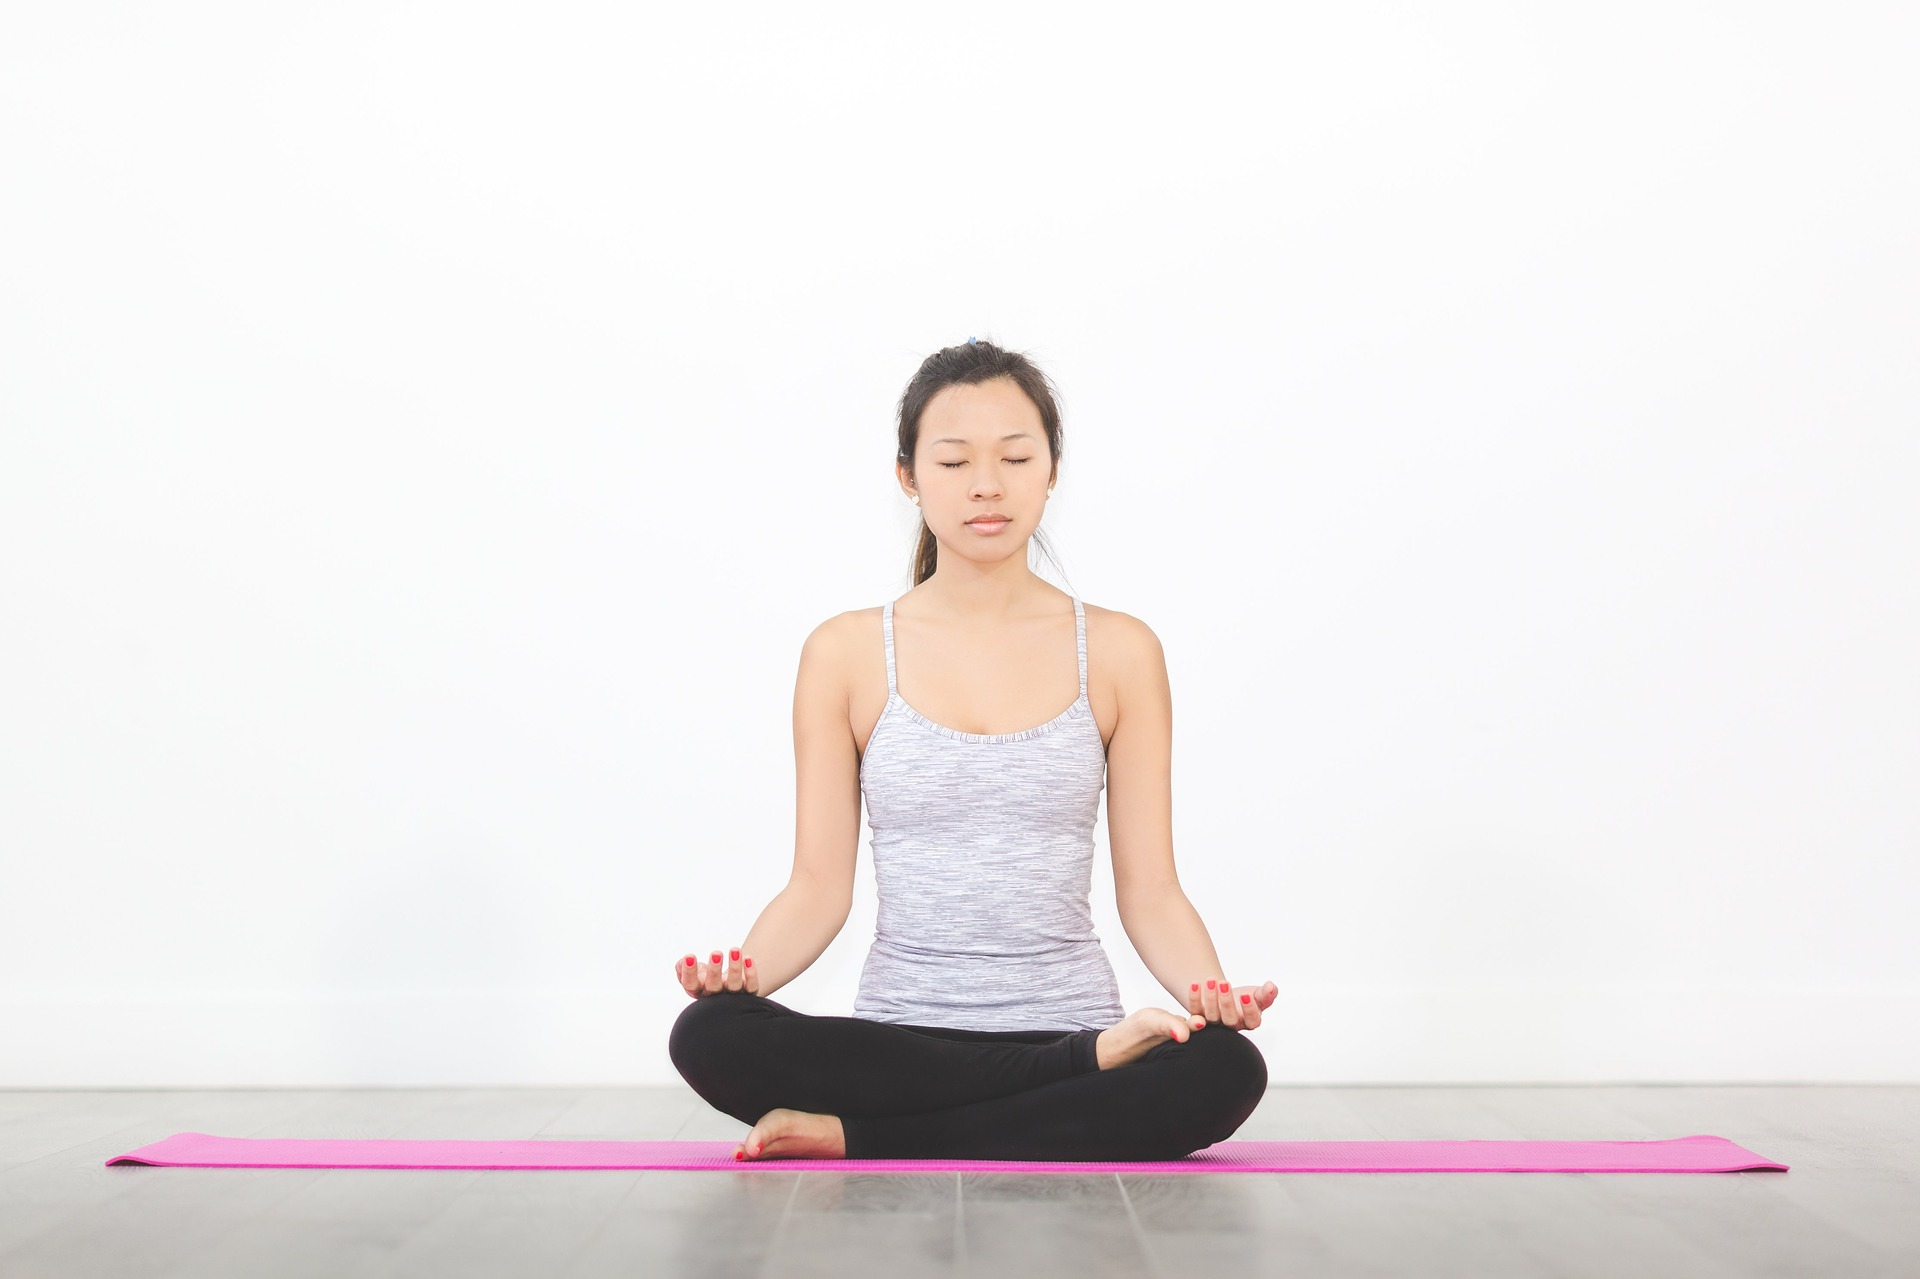 Learn How to Use Daily Meditation to Dominate Your Day